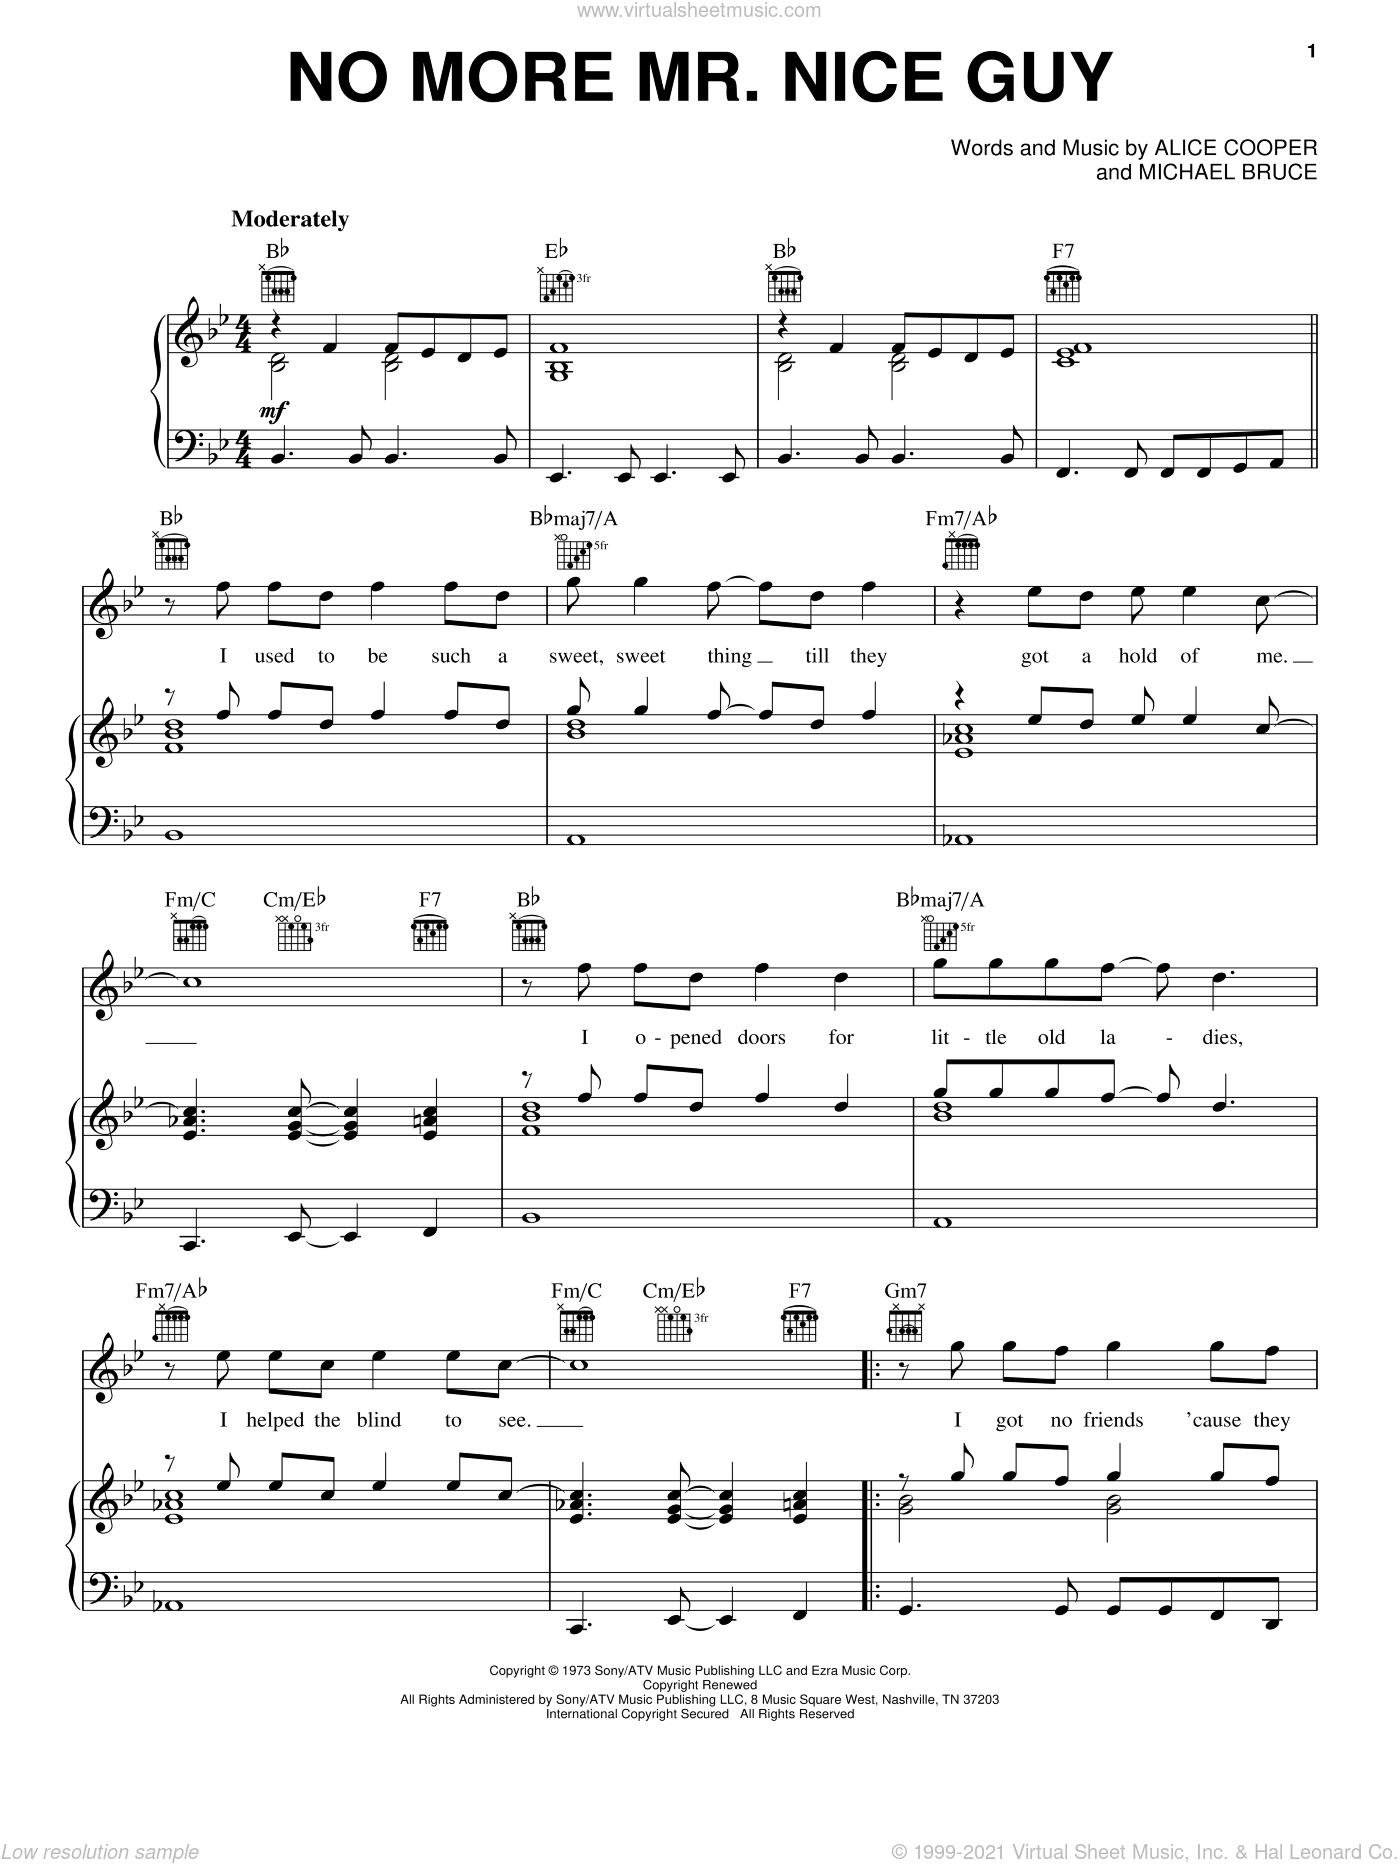 No More Mr. Nice Guy sheet music for voice, piano or guitar by Michael Bruce